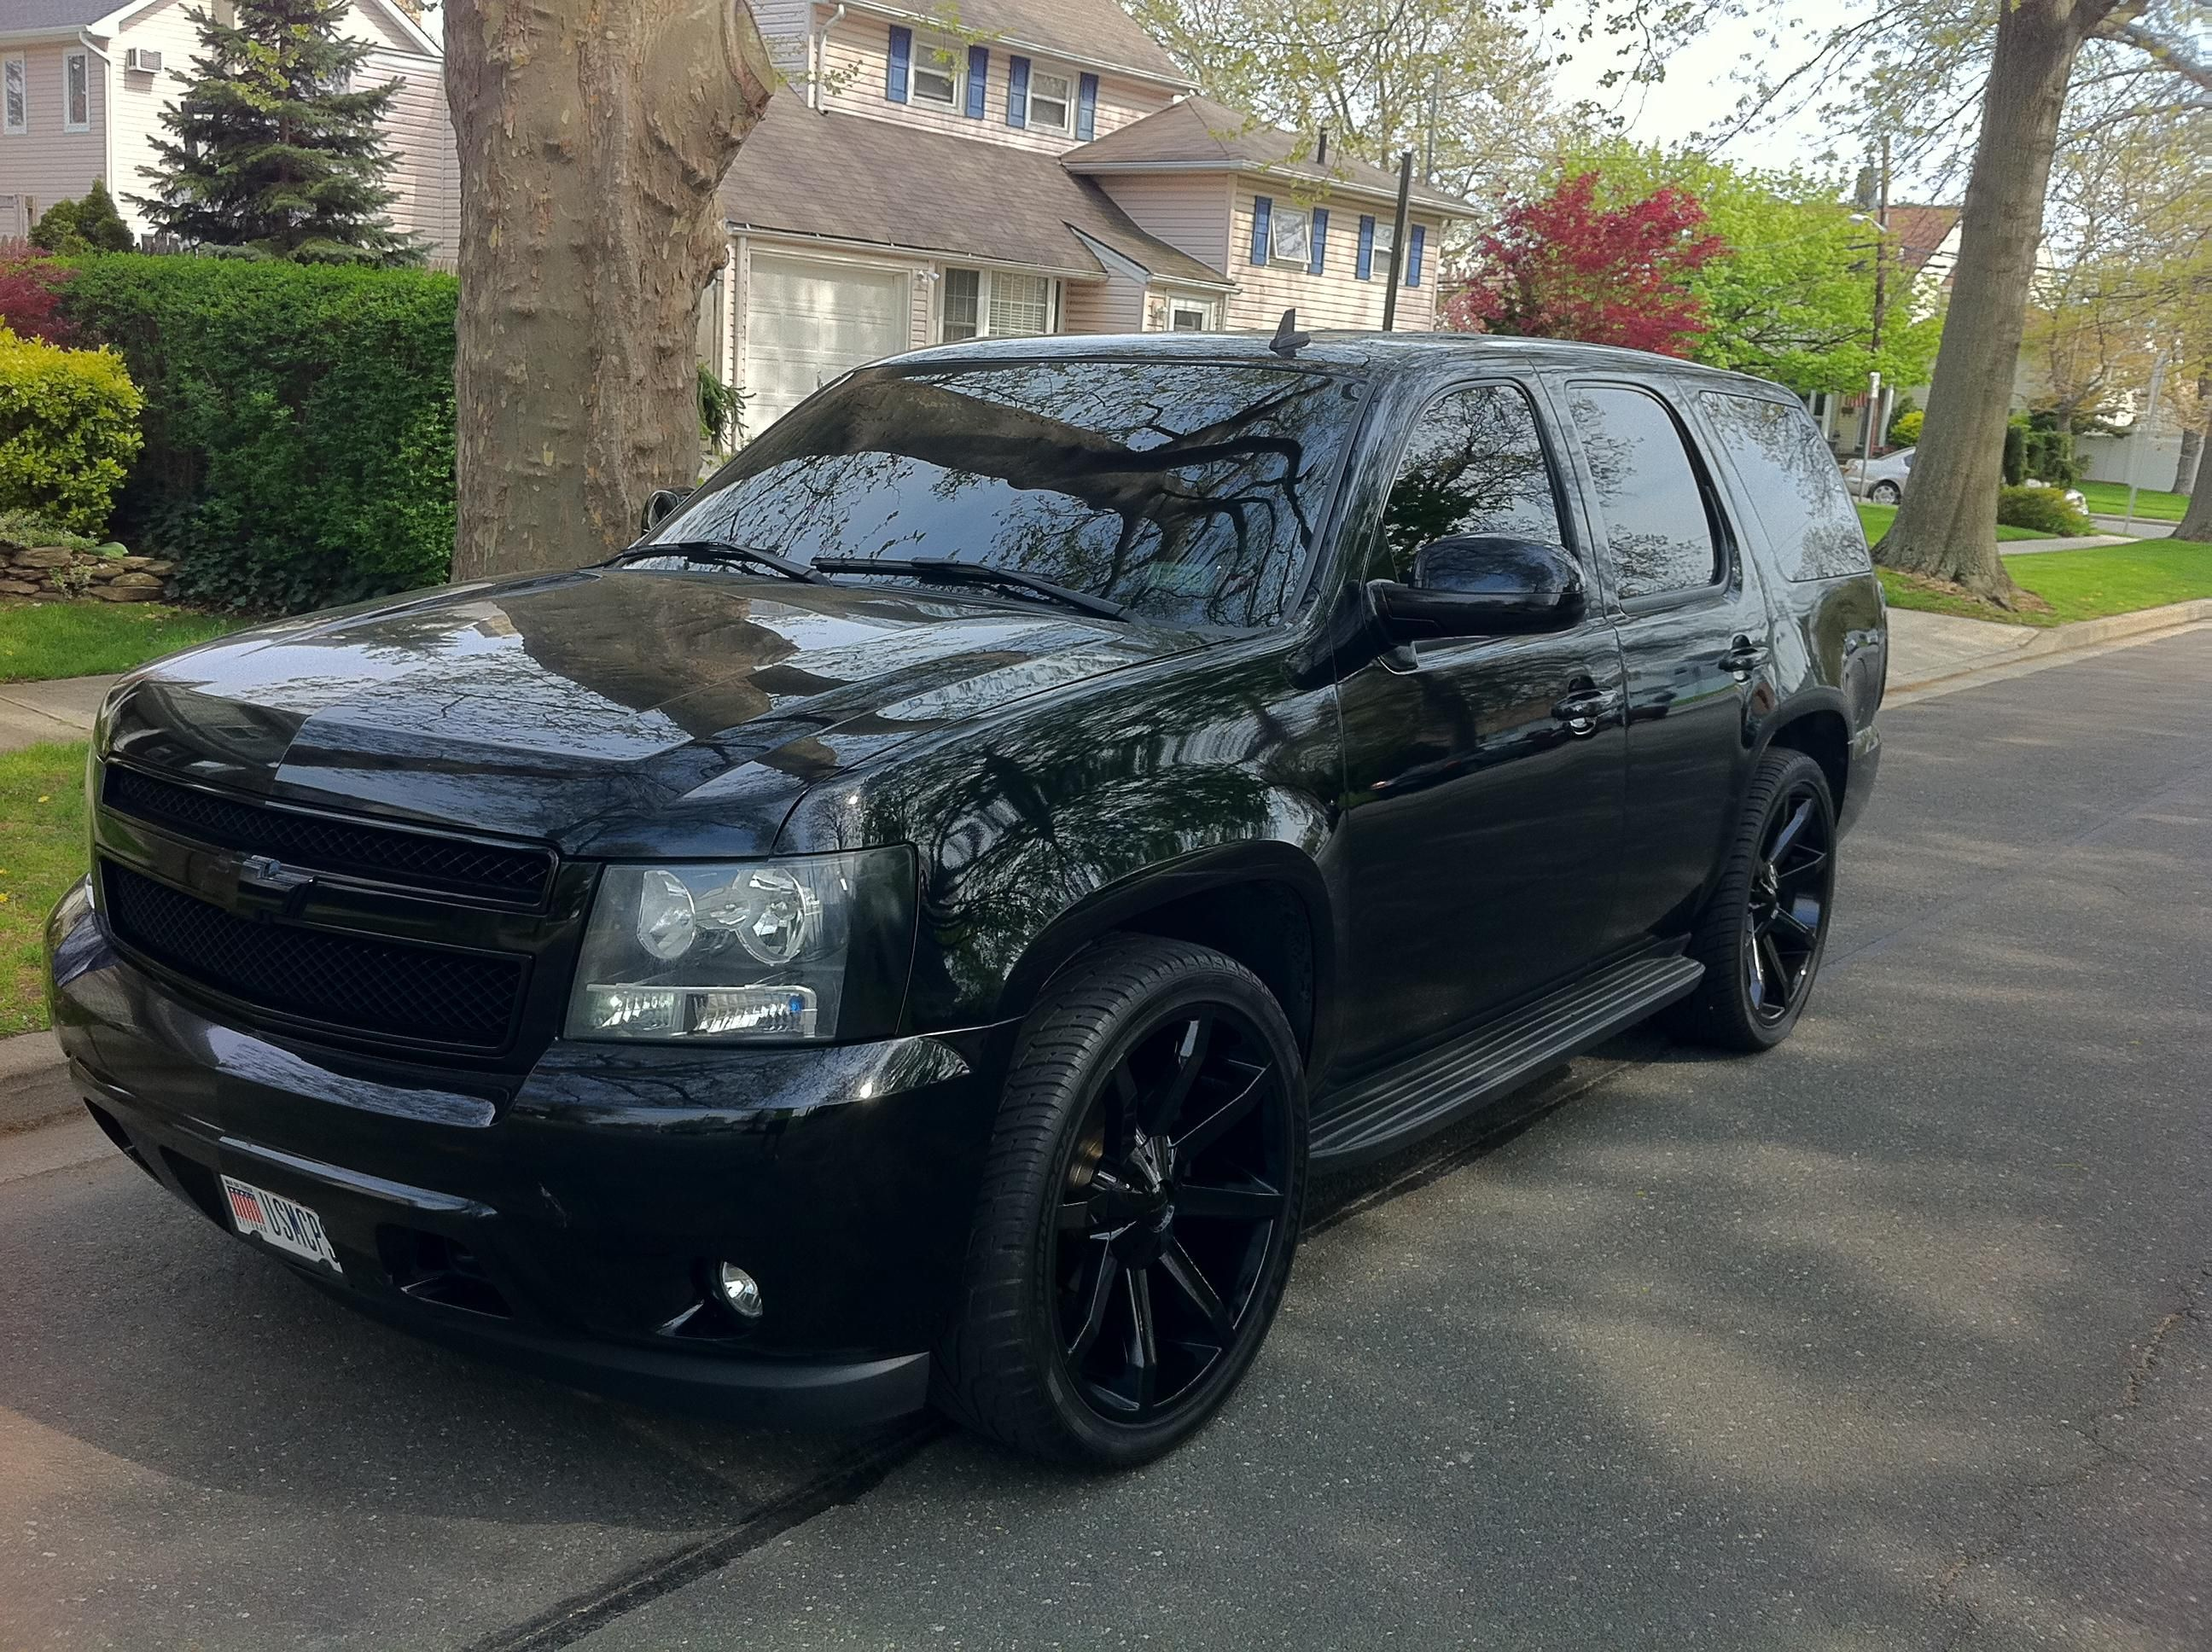 View Another Paulie Blaze 2007 Chevrolet Tahoe Post Photo